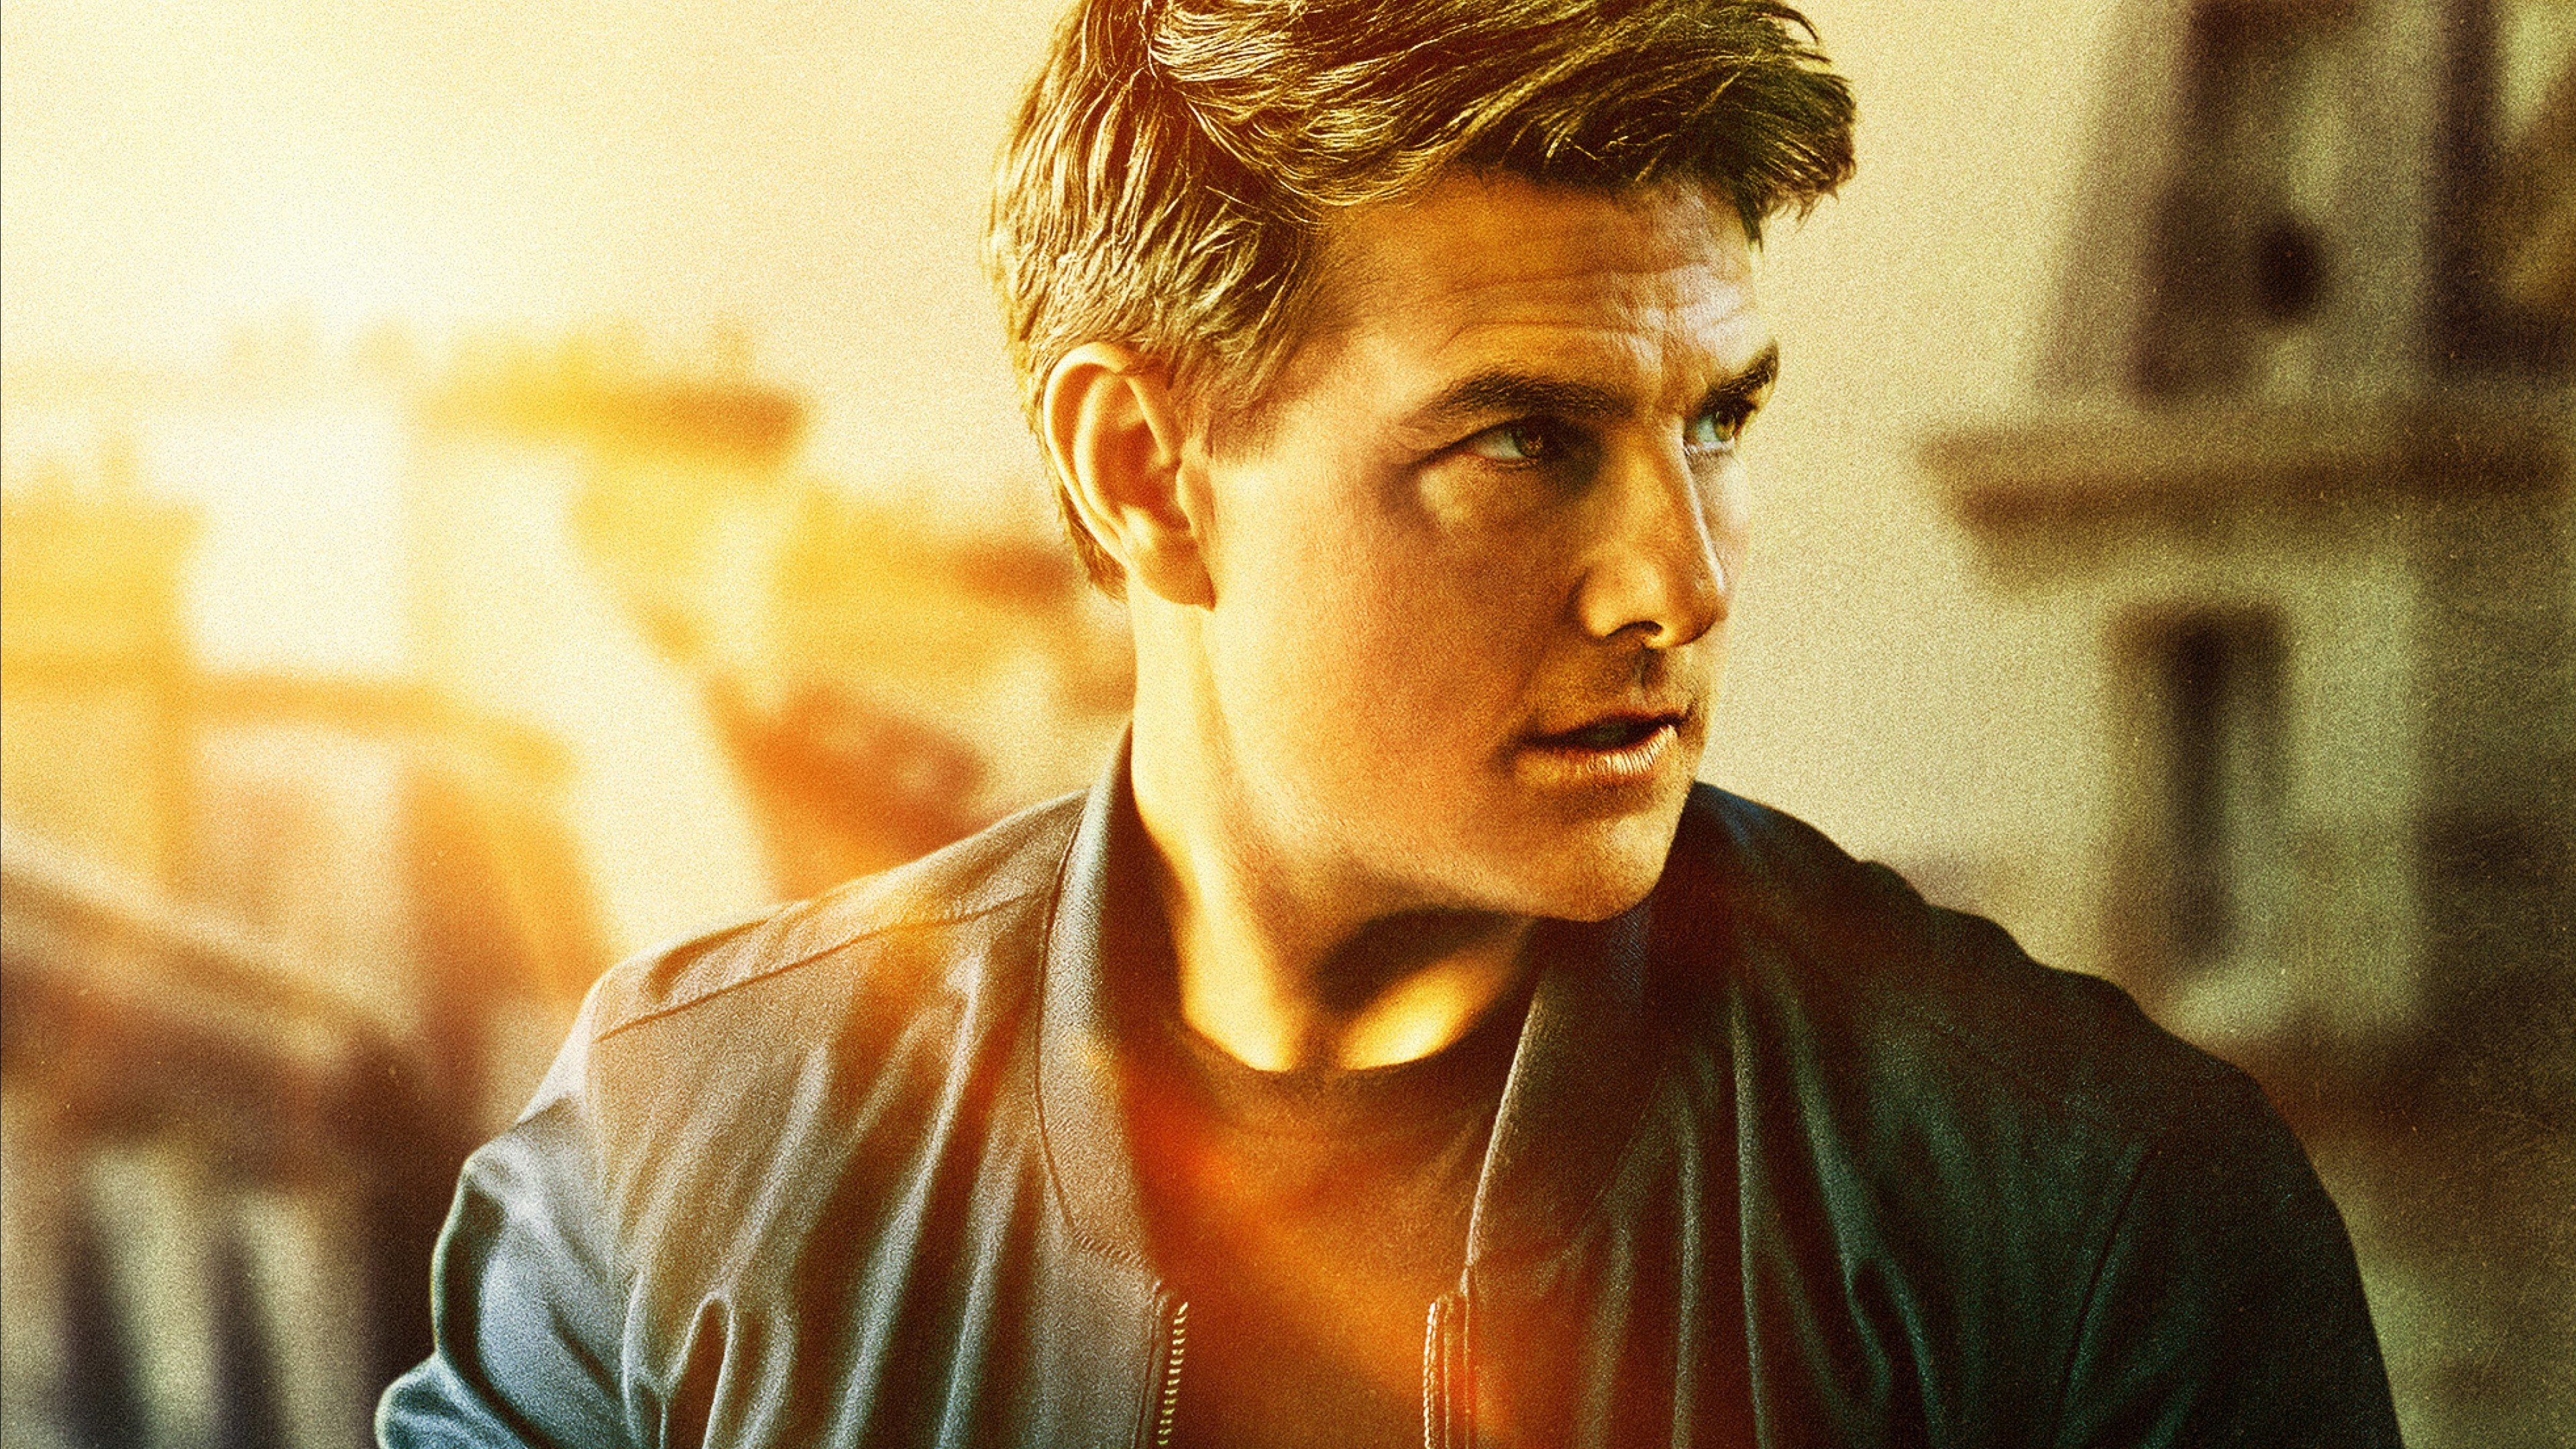 Tom cruise in movie photo wallpaper Gallery 3840x2160